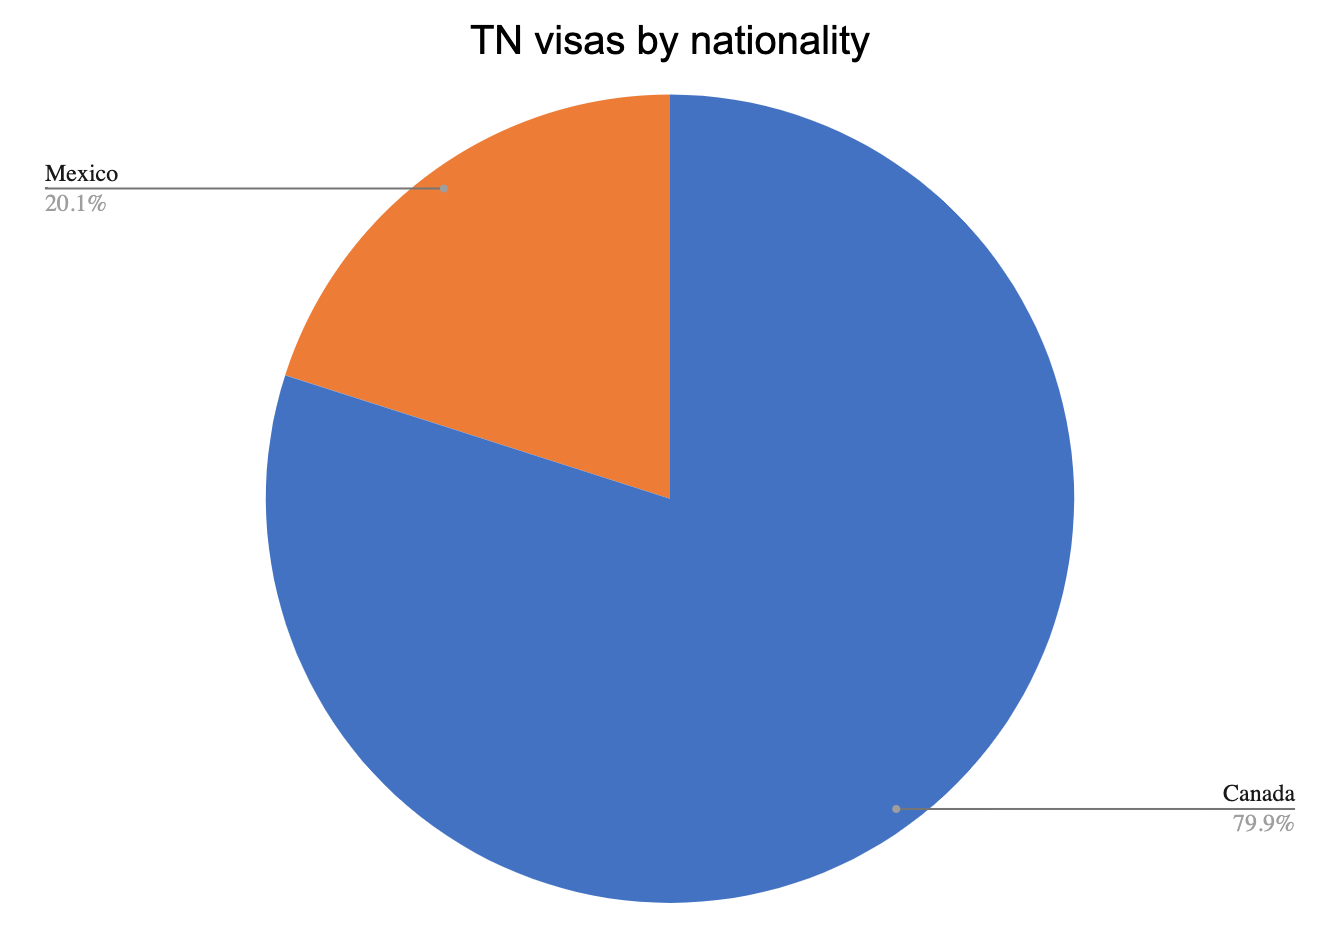 TN visas by nationality